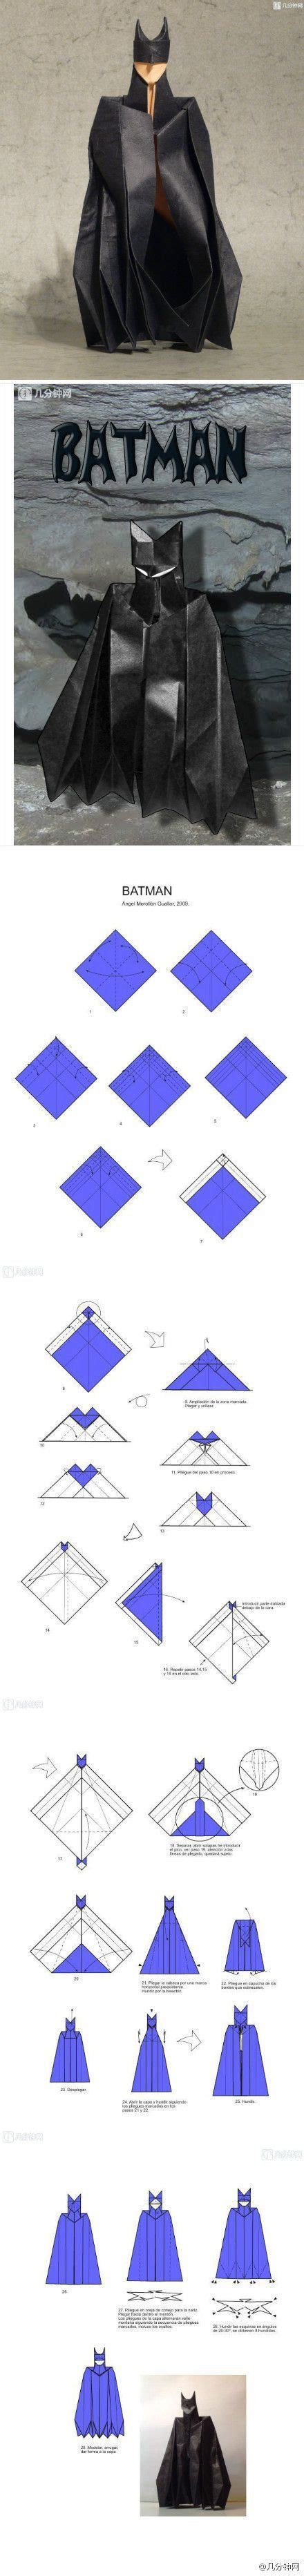 How To Make A Paper Batman - how to make an origami paper batman origami paper